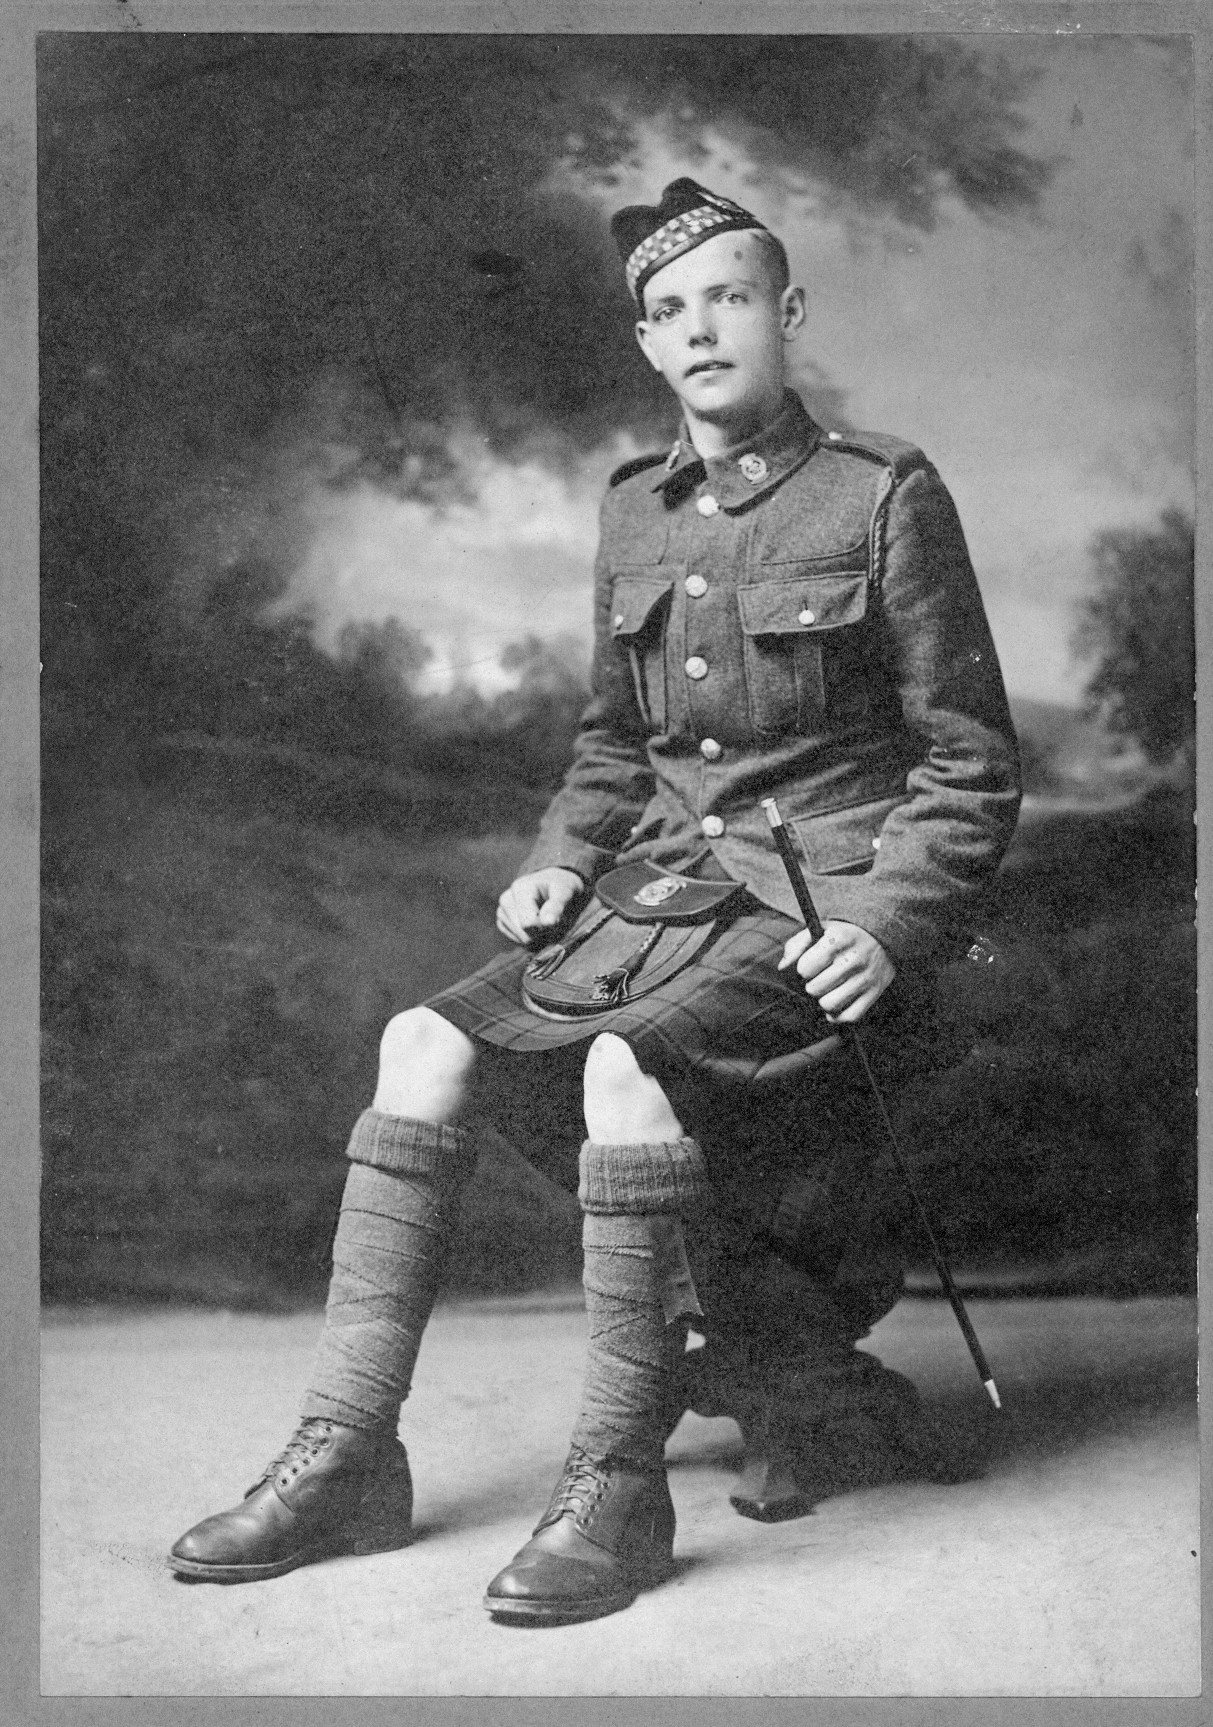 Photo of John Owens– 799098 Pte John Owens originally 134th Battalion (48th Highlanders); transferred to the 15th Battalion (48th Highlanders) No. 1 Company and KIA at Vimy on 9 April 1917.